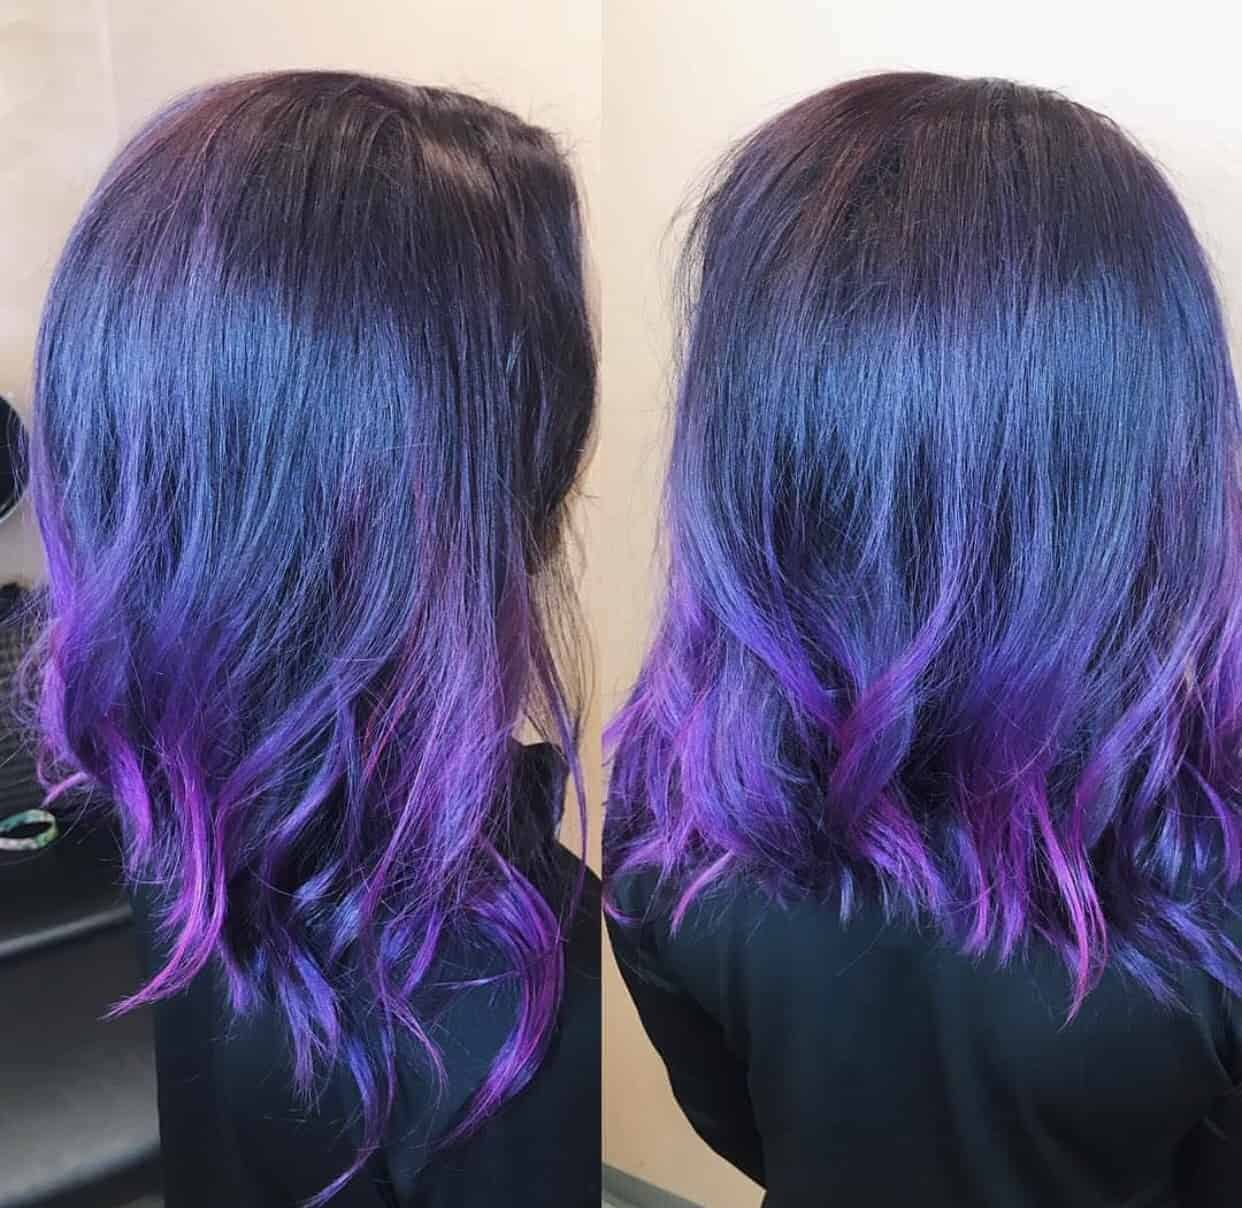 New Hair Color At Be Inspired Salon Be Inspired